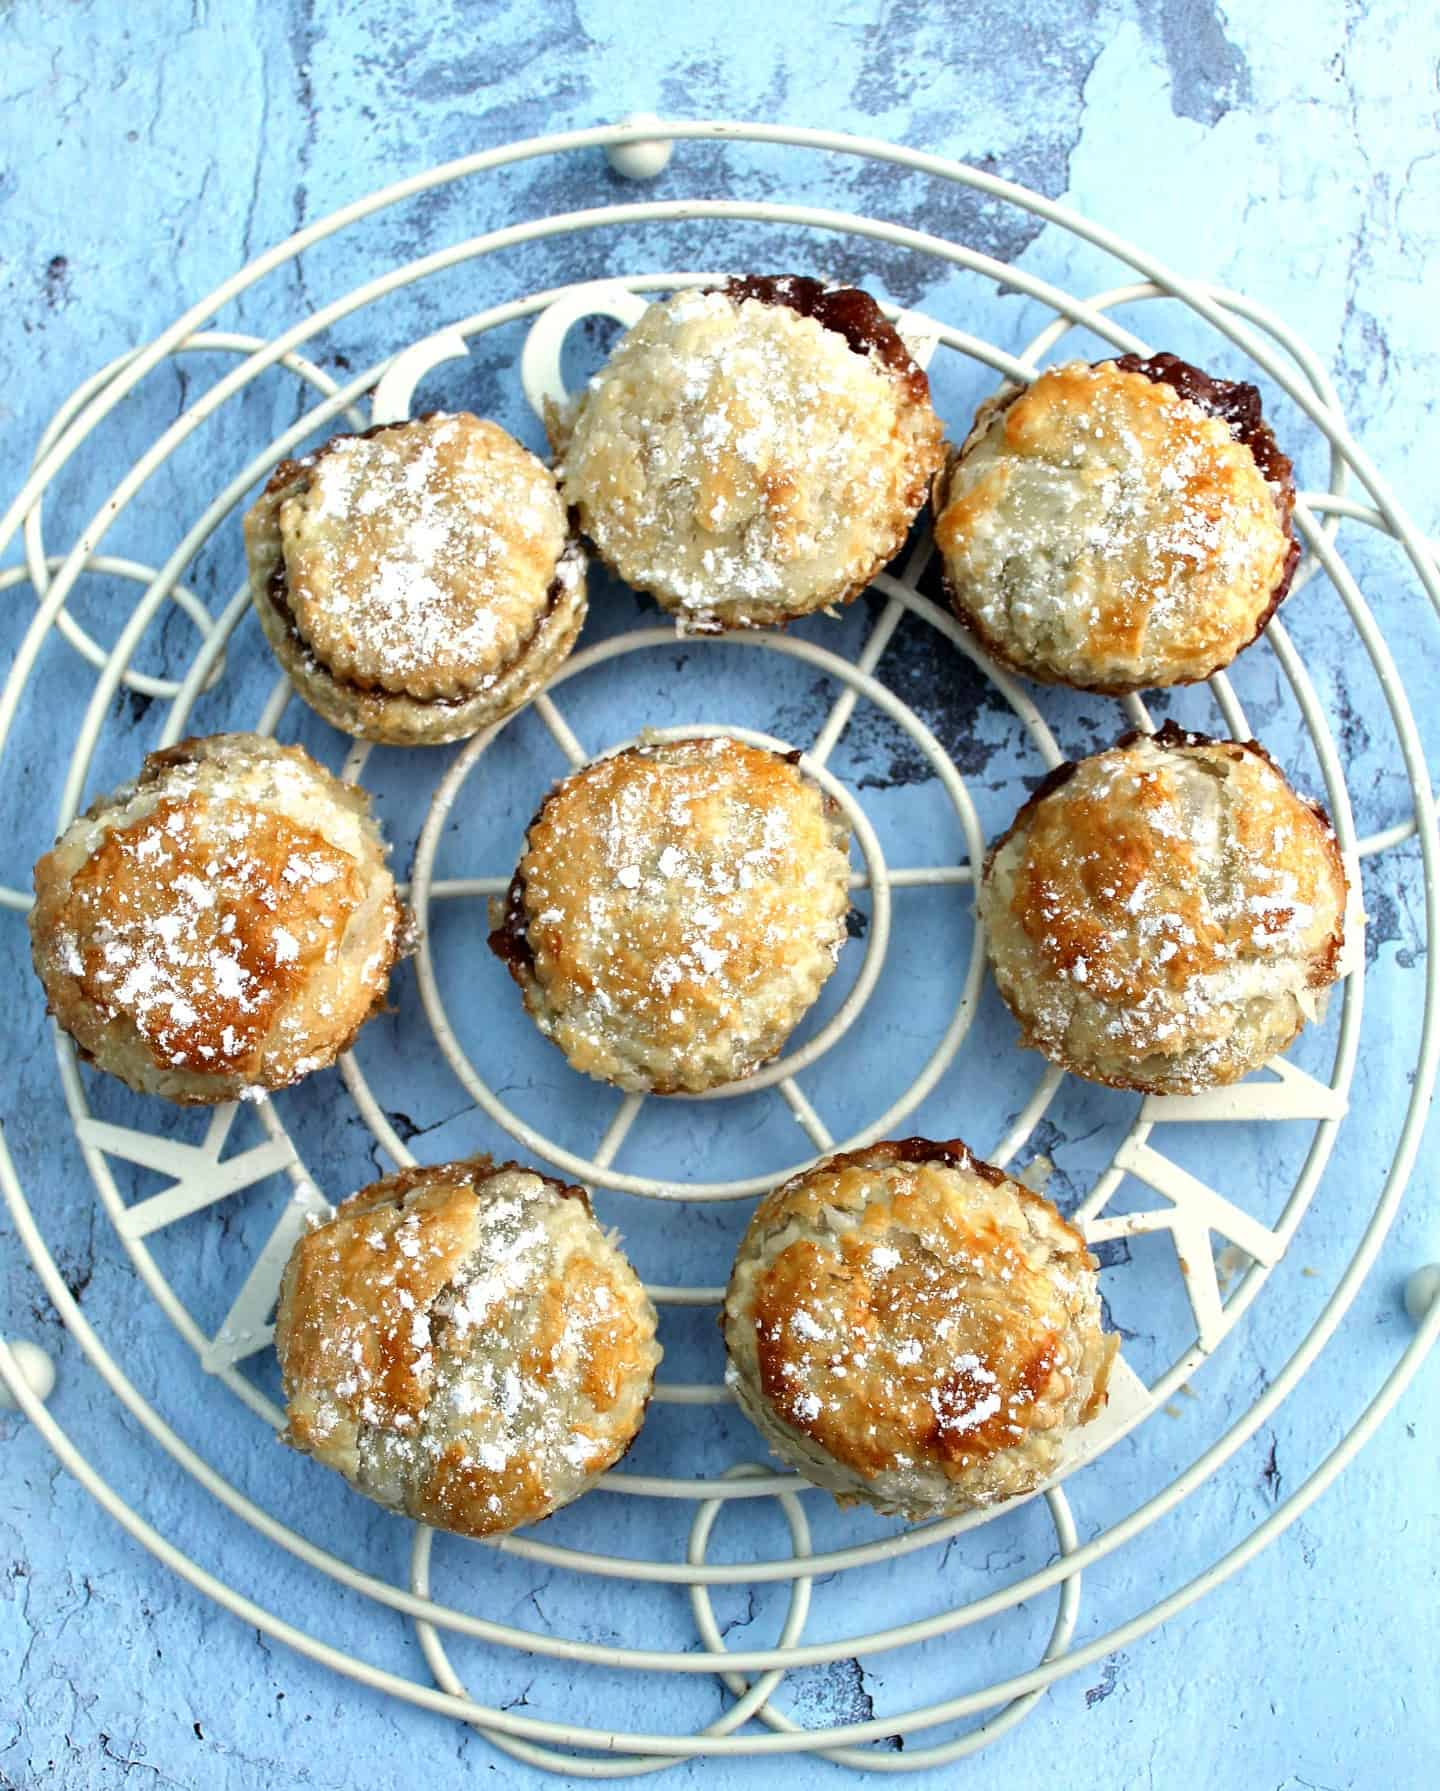 Mince pies on a white round cooling rack, on light blue background.